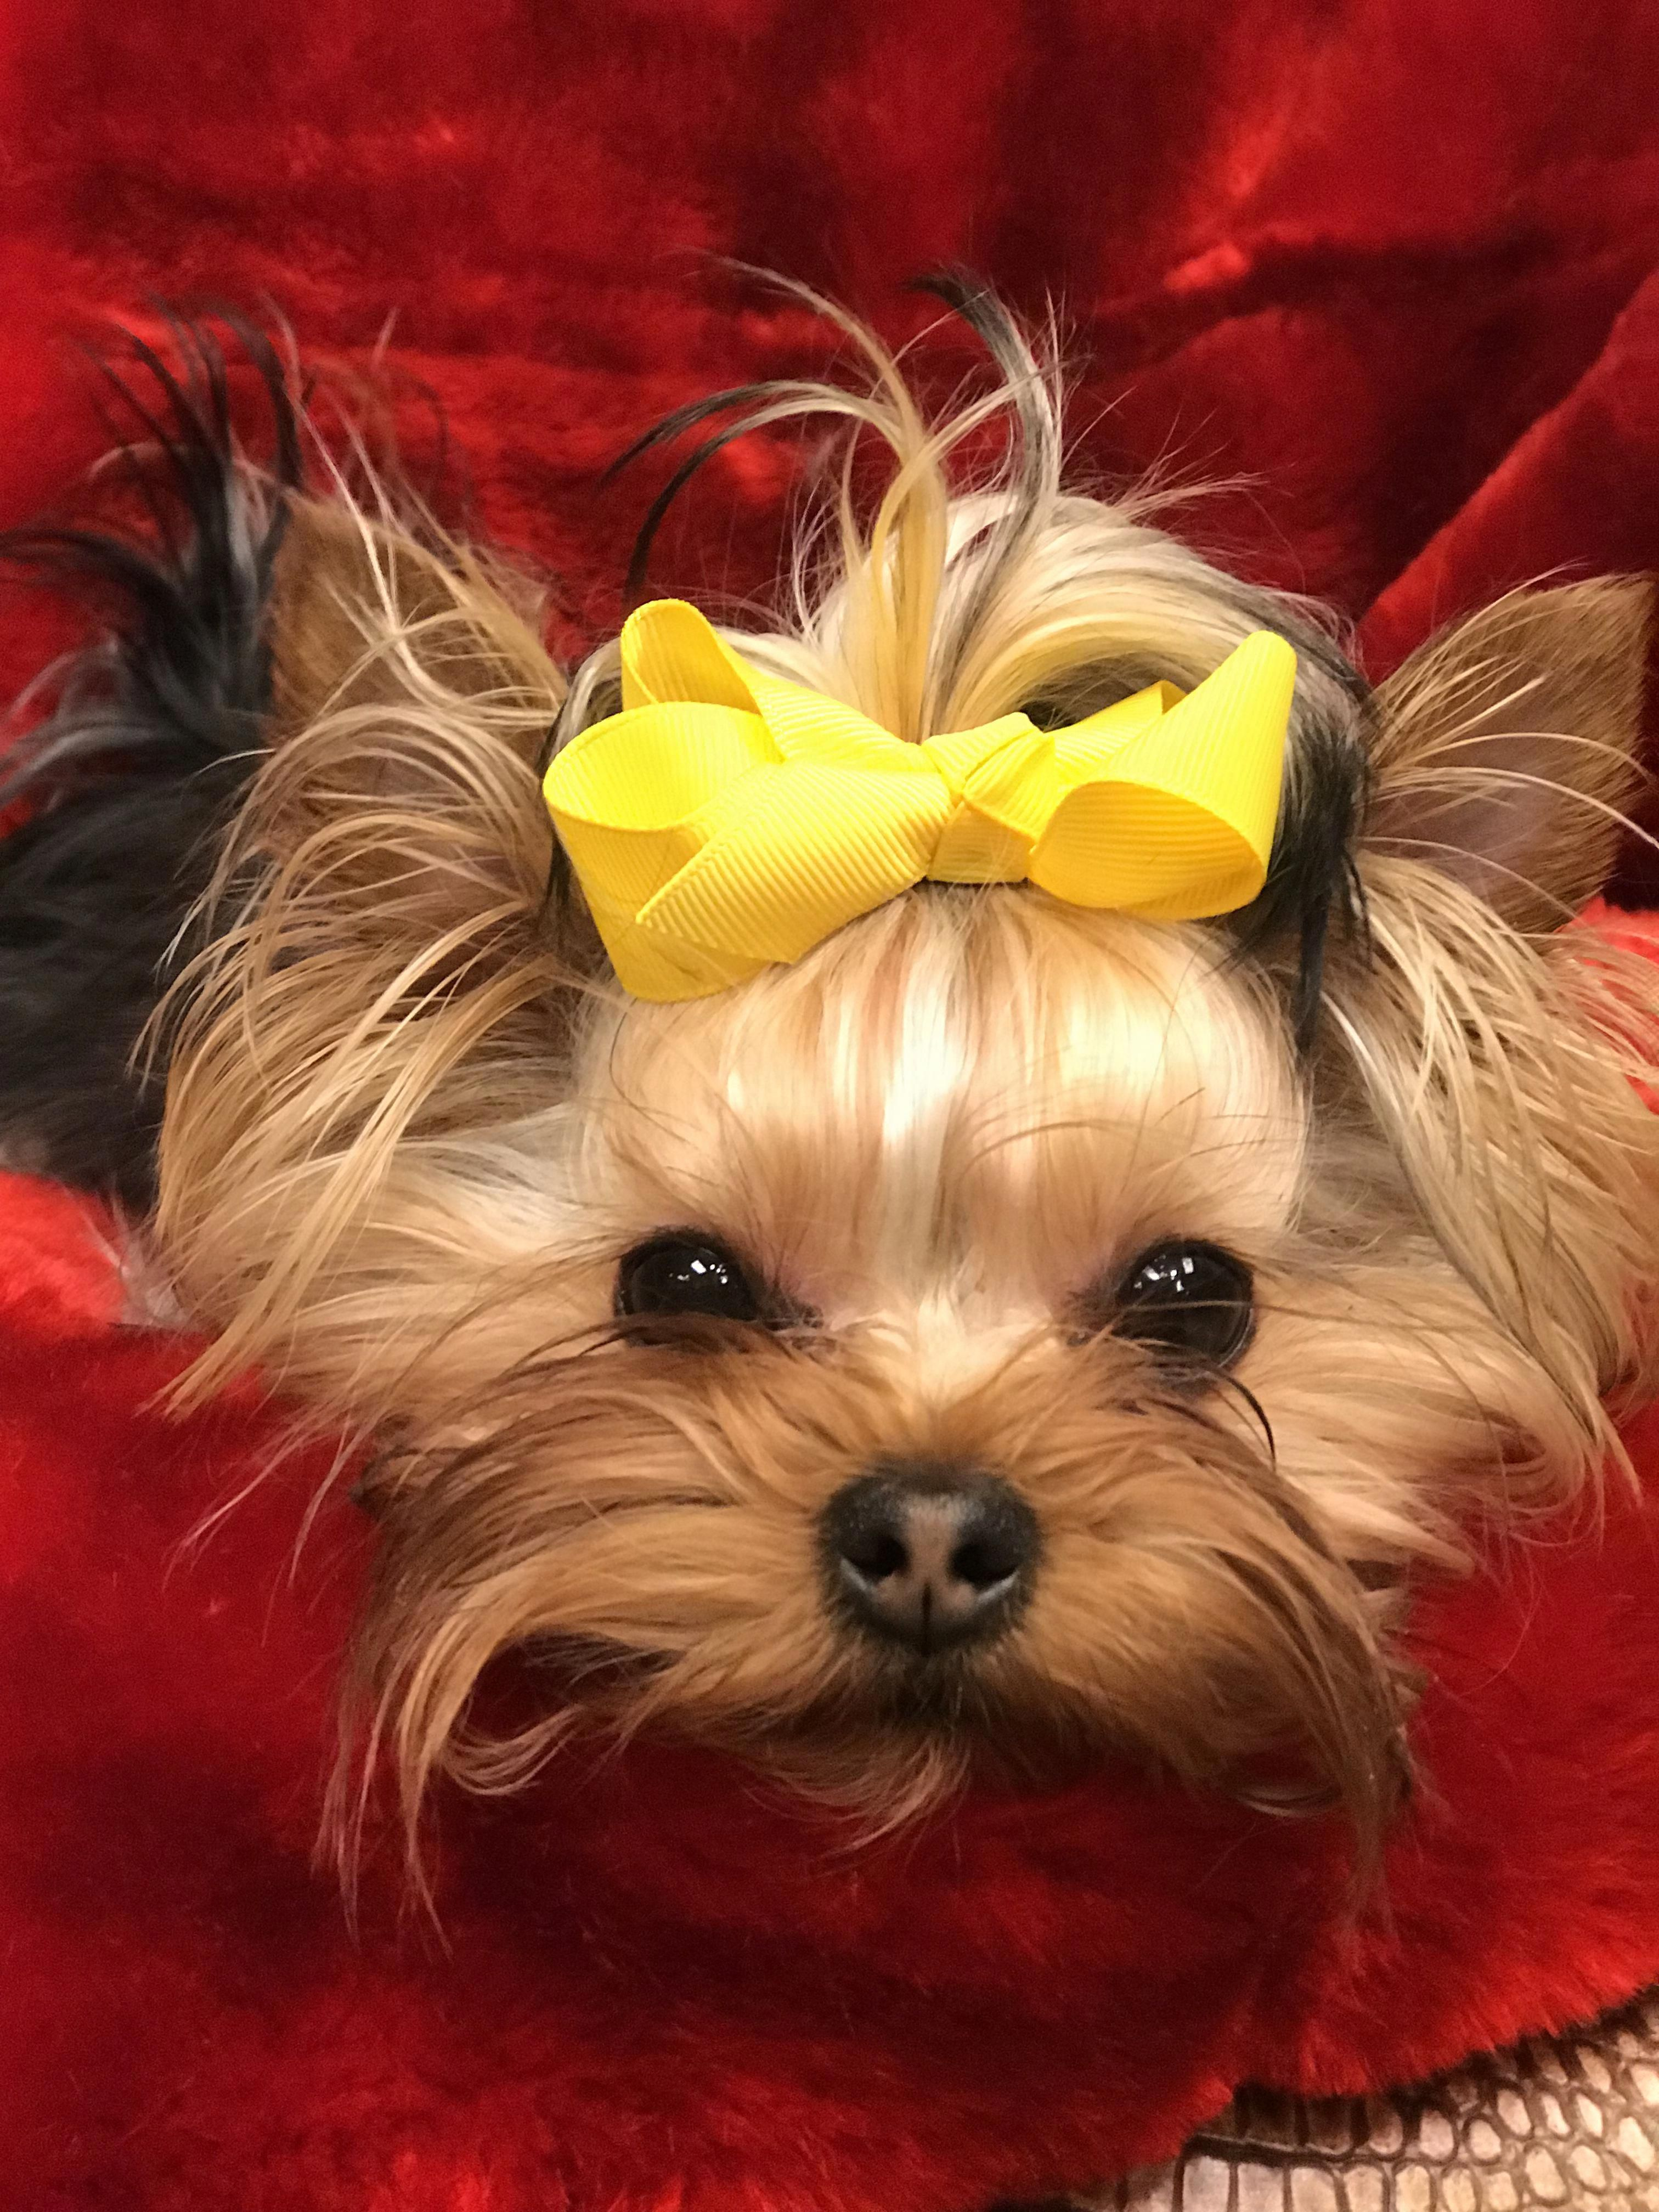 Find out more on the yorkshire terrier pups health